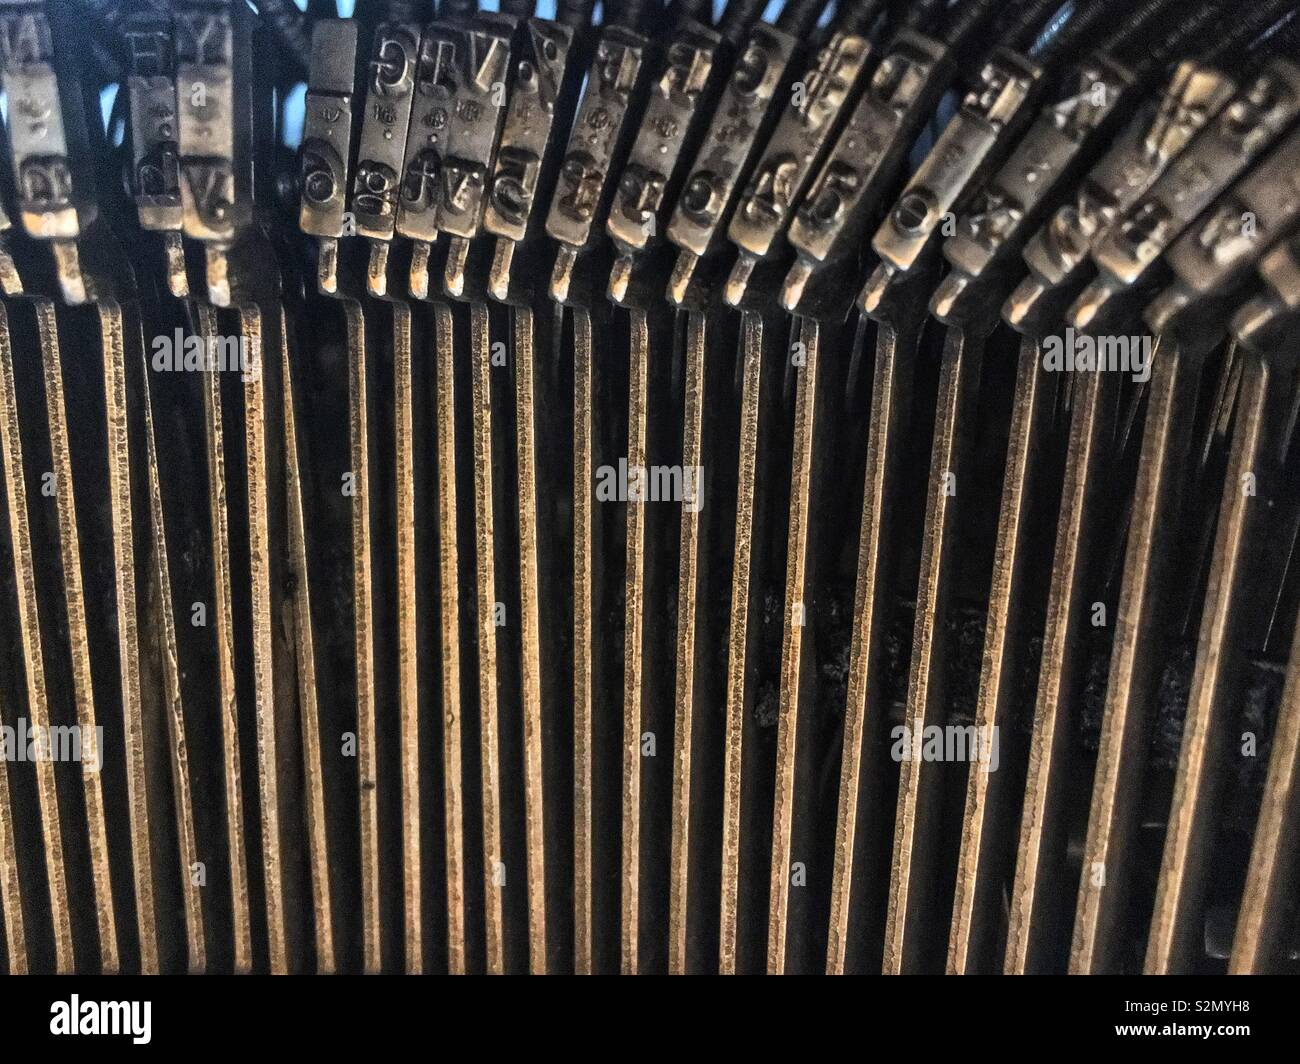 Closeup of the letter printing keys on an antique typewriter. - Stock Image